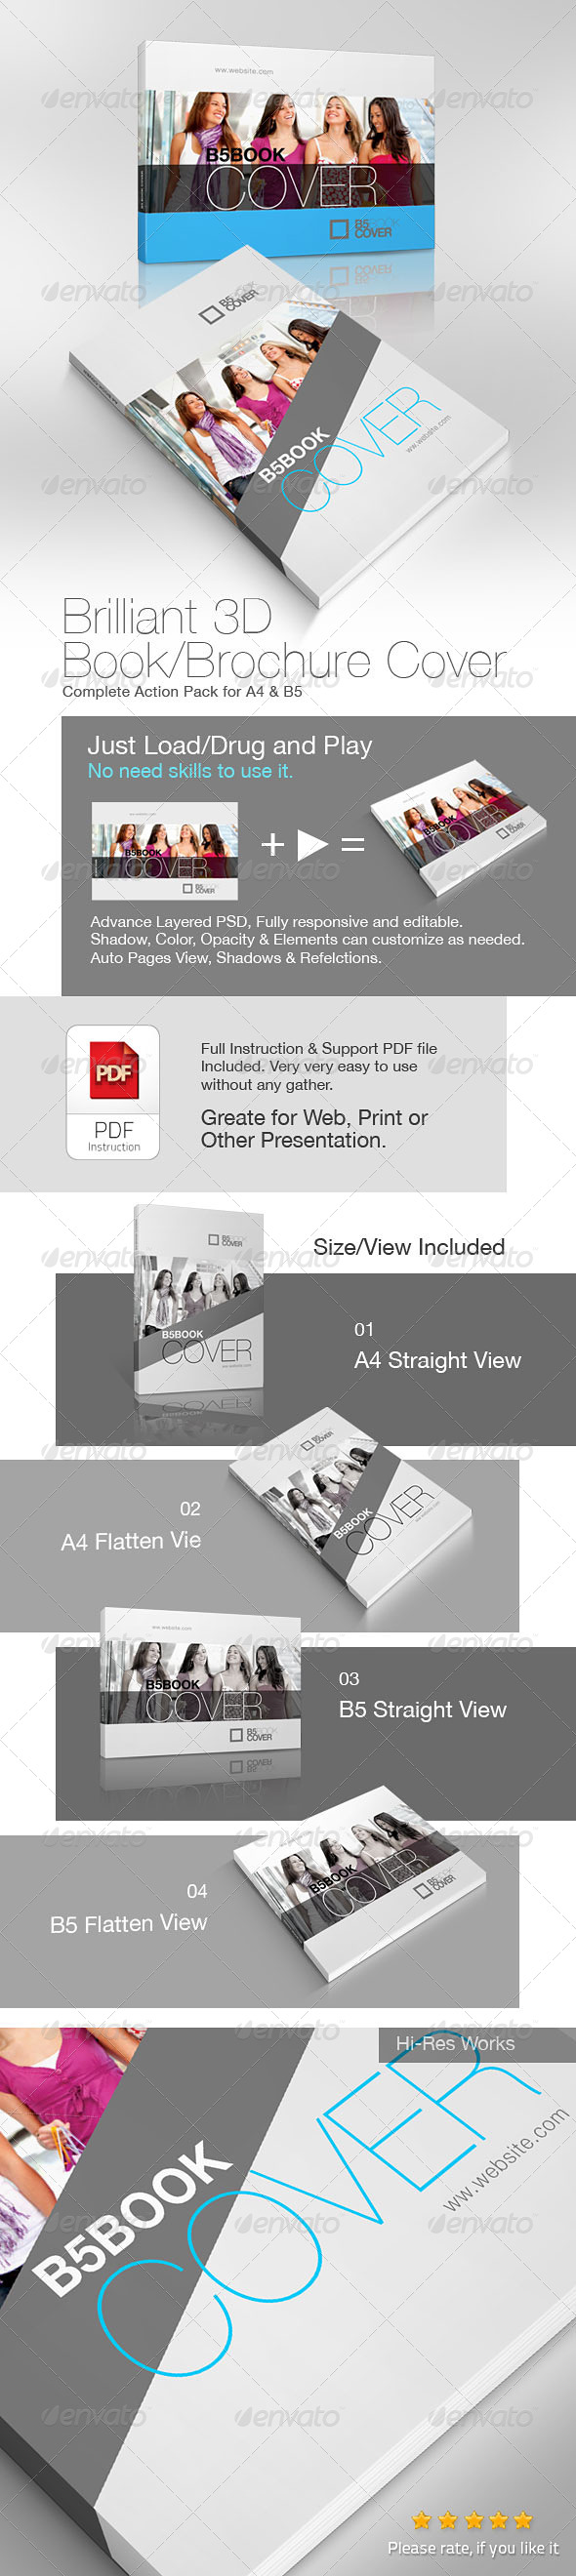 GraphicRiver Brilliant 3D Book Brochure Cover Action 4833428